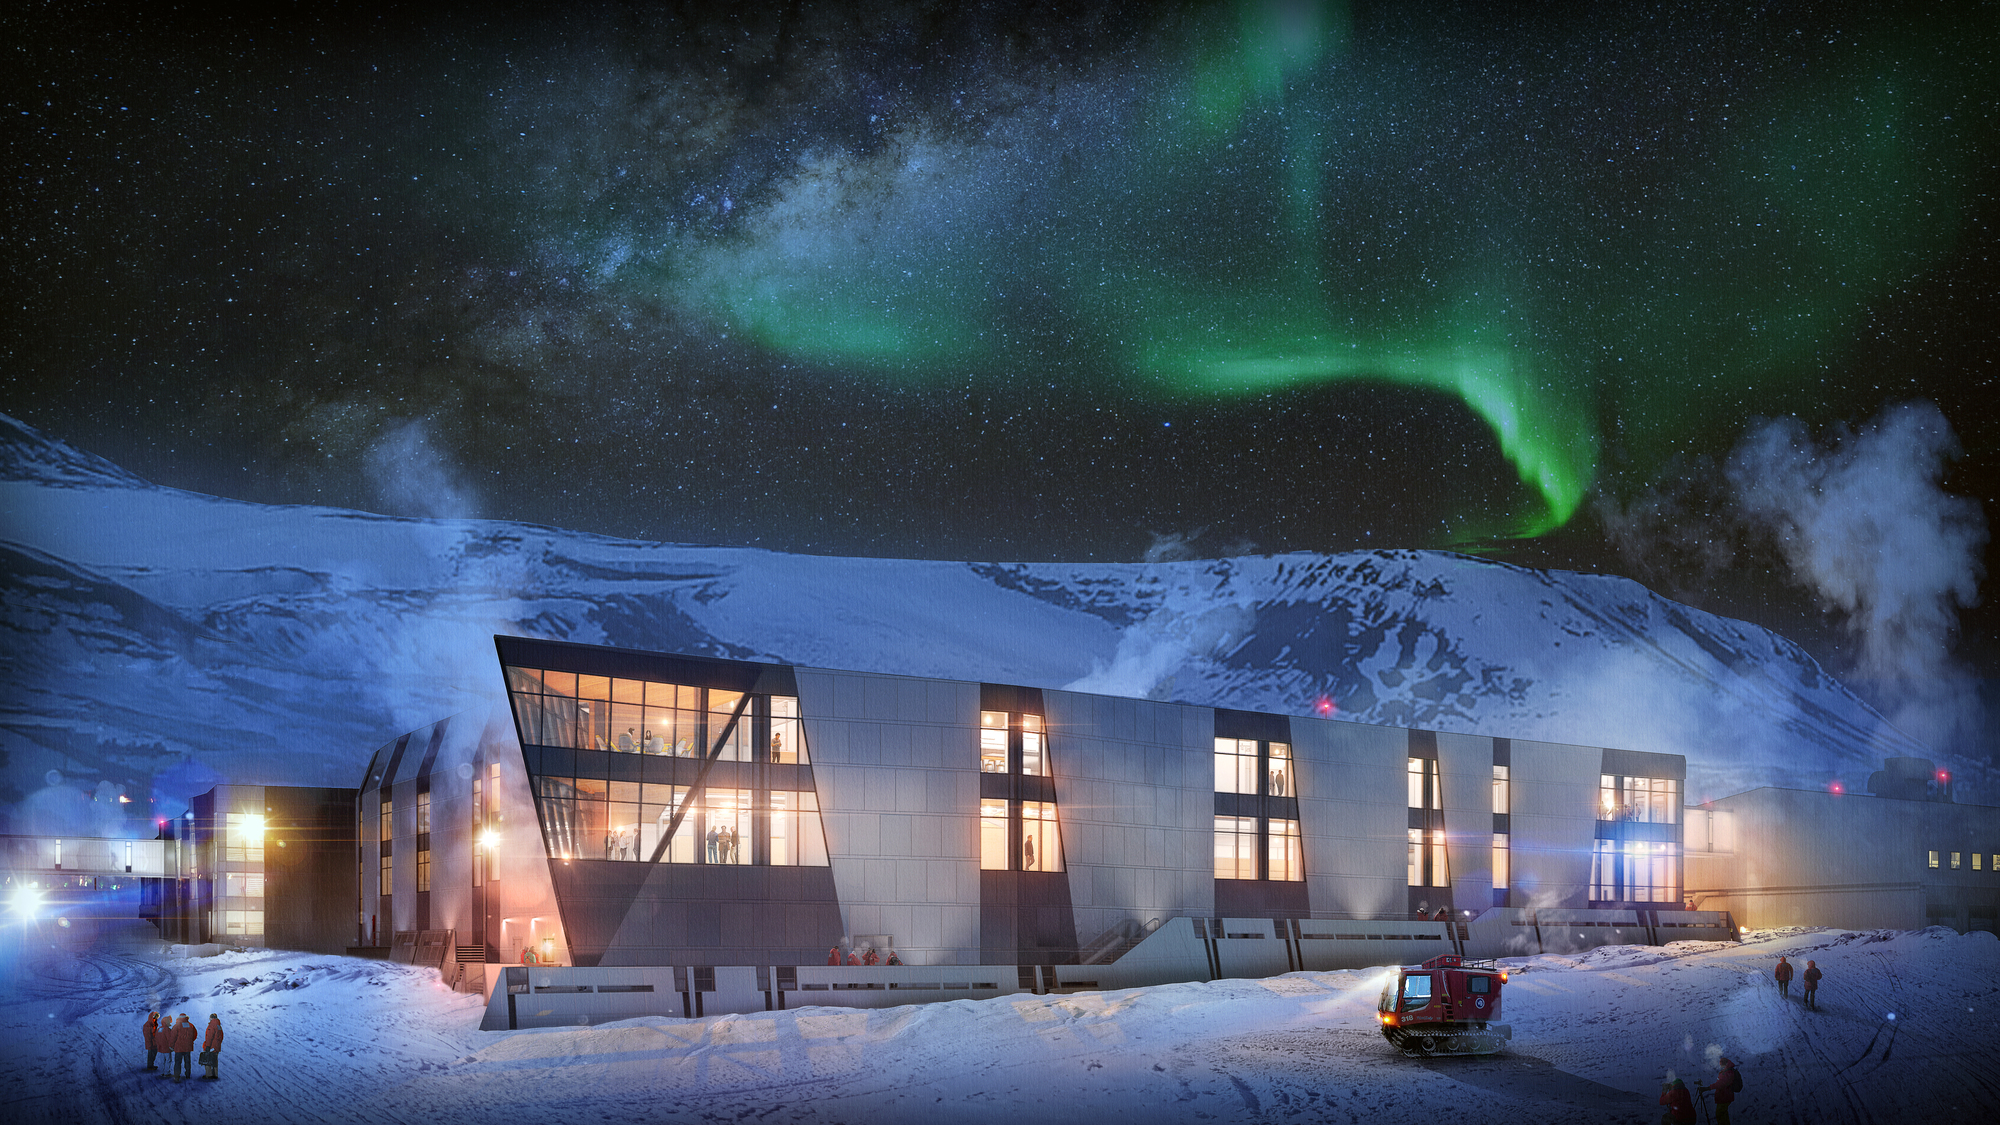 antarctic base mcmurdo station receives sustainable new